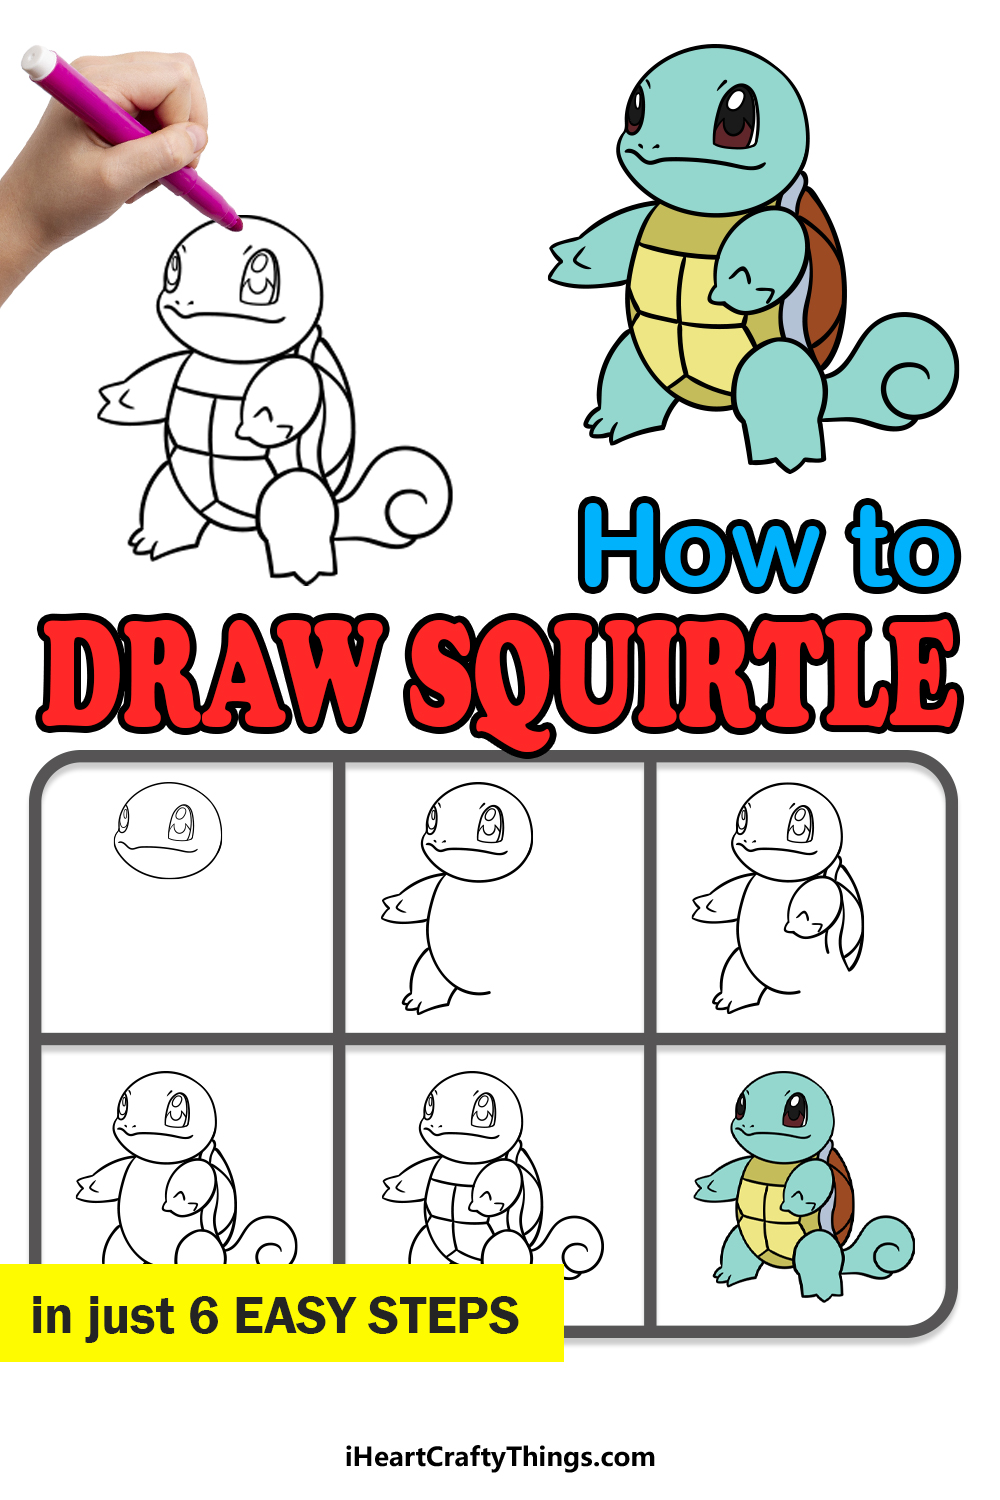 how to draw squirtle in 6 easy steps